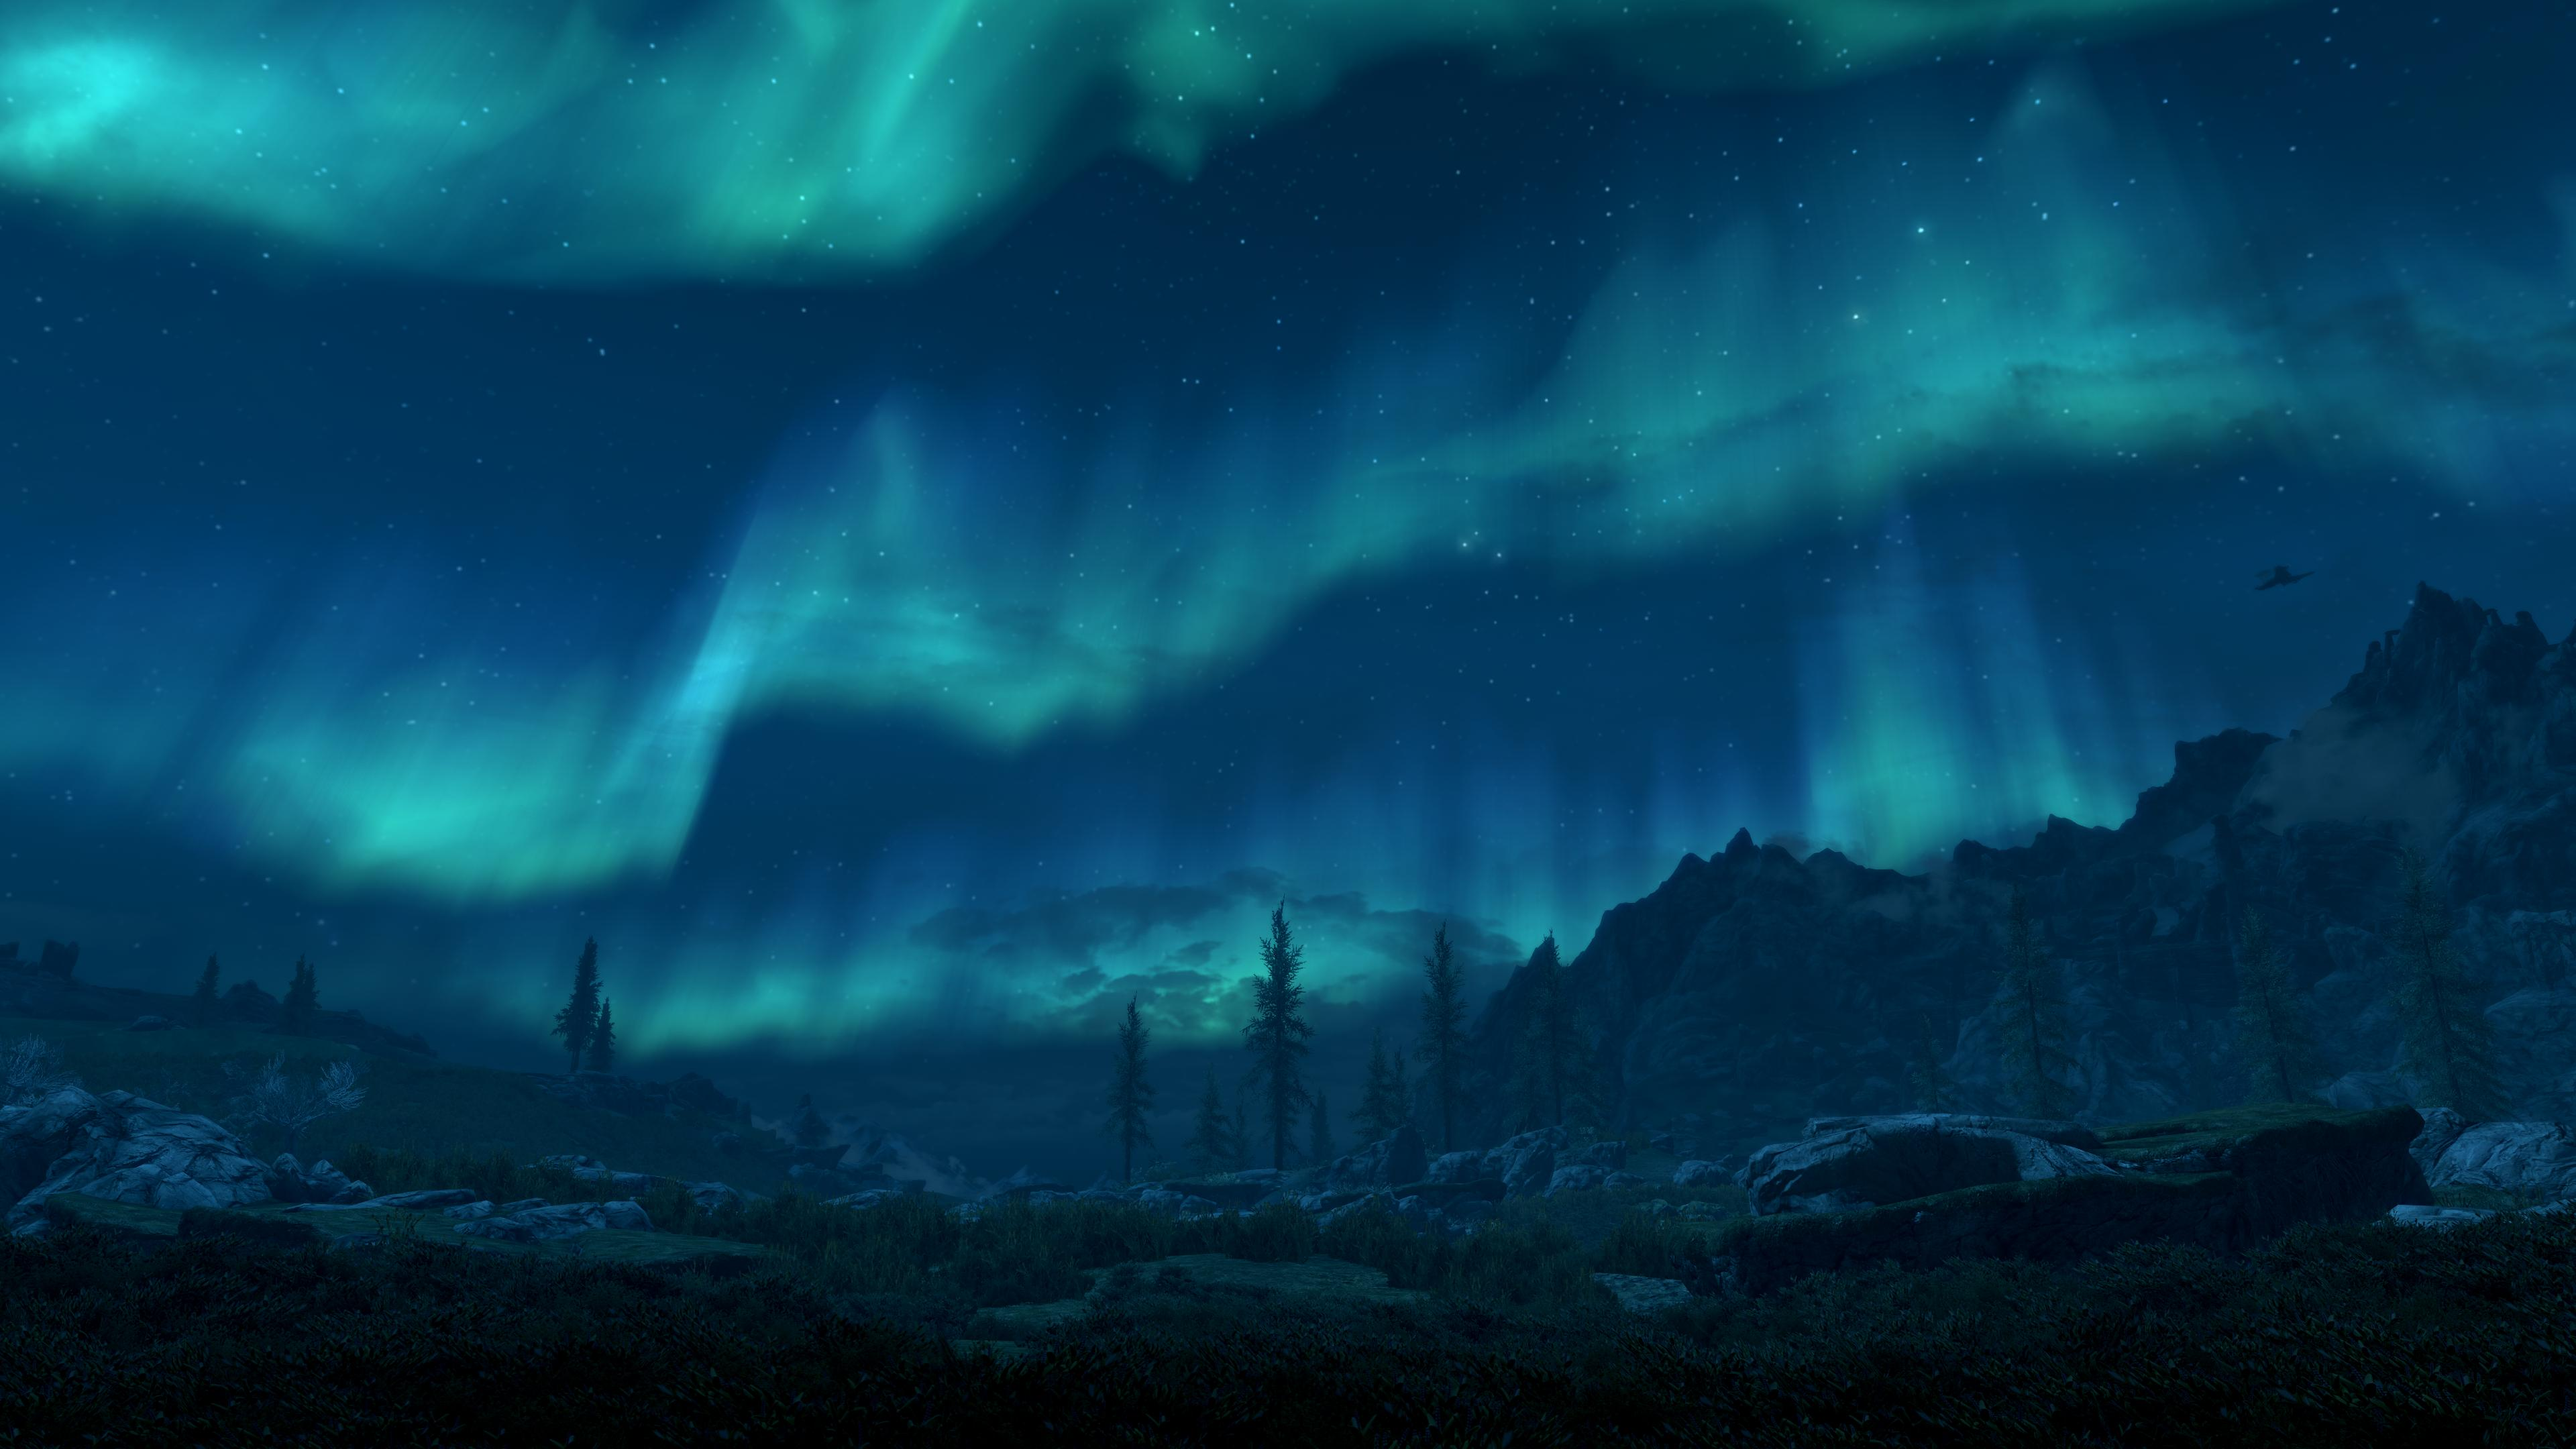 skyrim for android download, skyrim desktop backgrounds